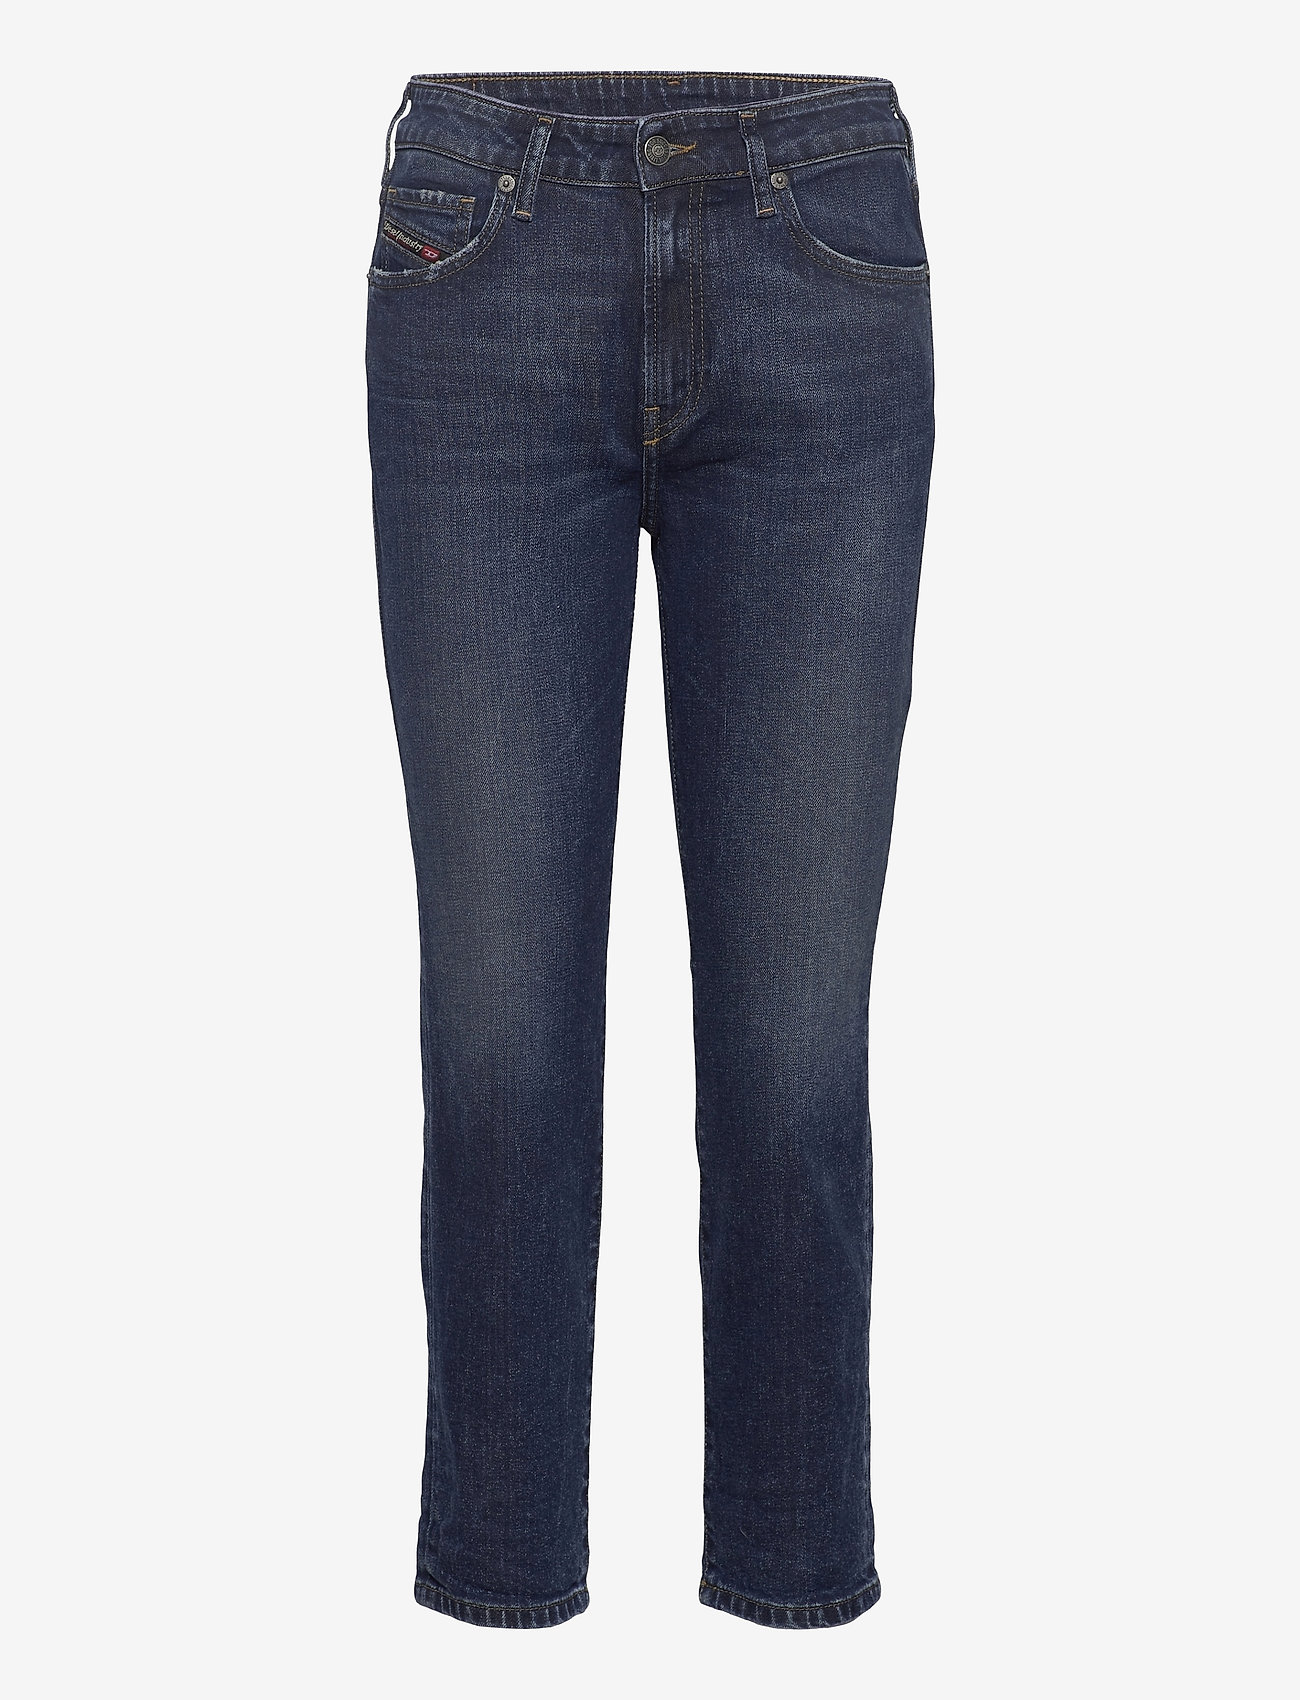 Diesel Women - D-JOY L.30 TROUSERS - straight jeans - denim - 0